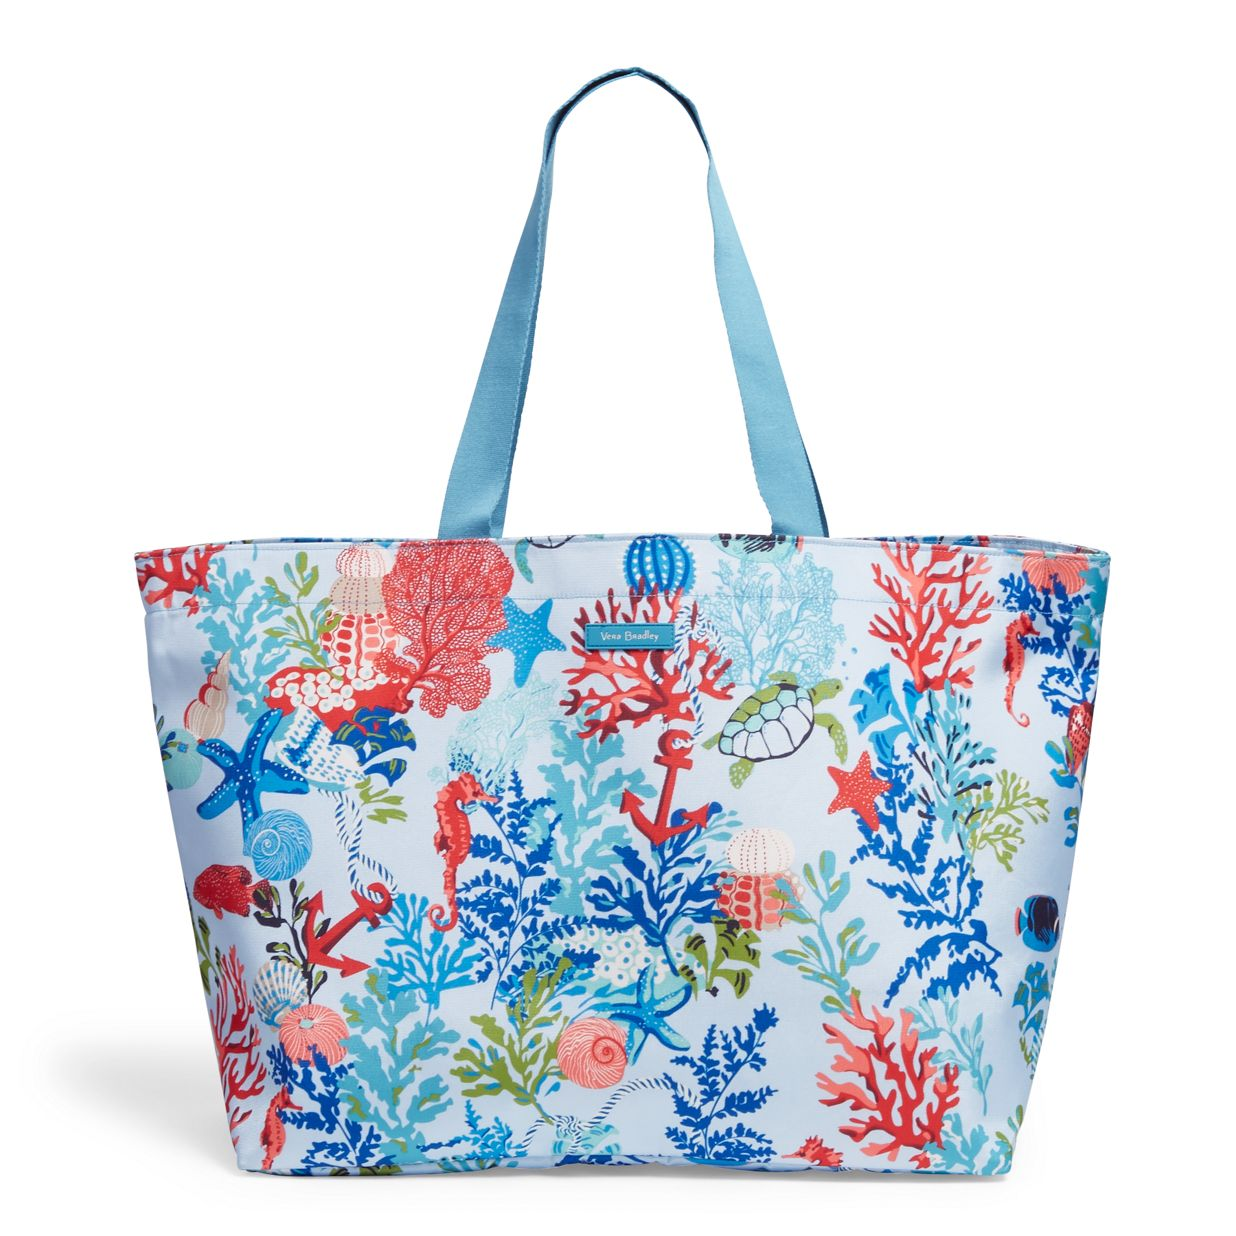 Image of Lighten Up Large Family Tote in Shore Thing ... d5fe64fd53725